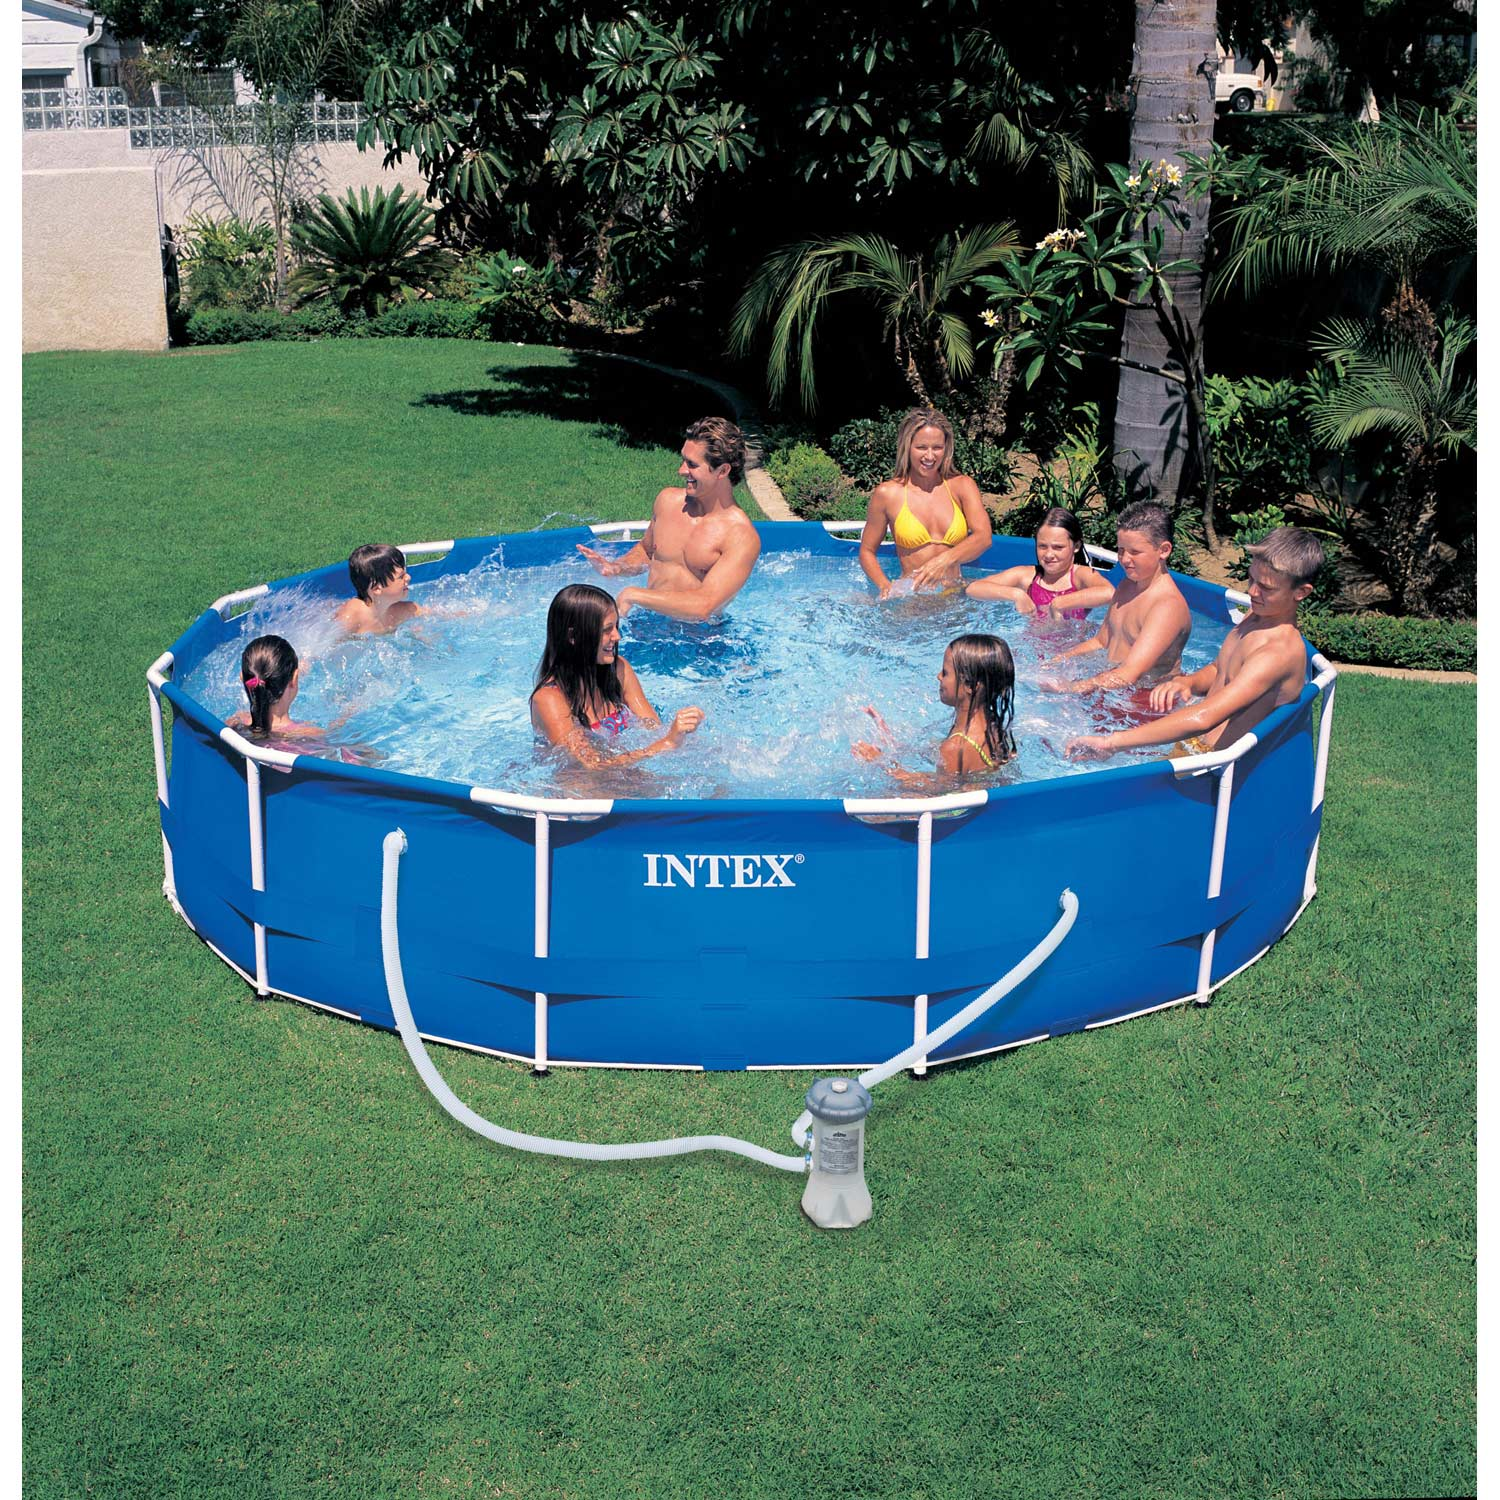 Piscine hors sol autoportante tubulaire metal frame intex for Piscine aluminium hors sol